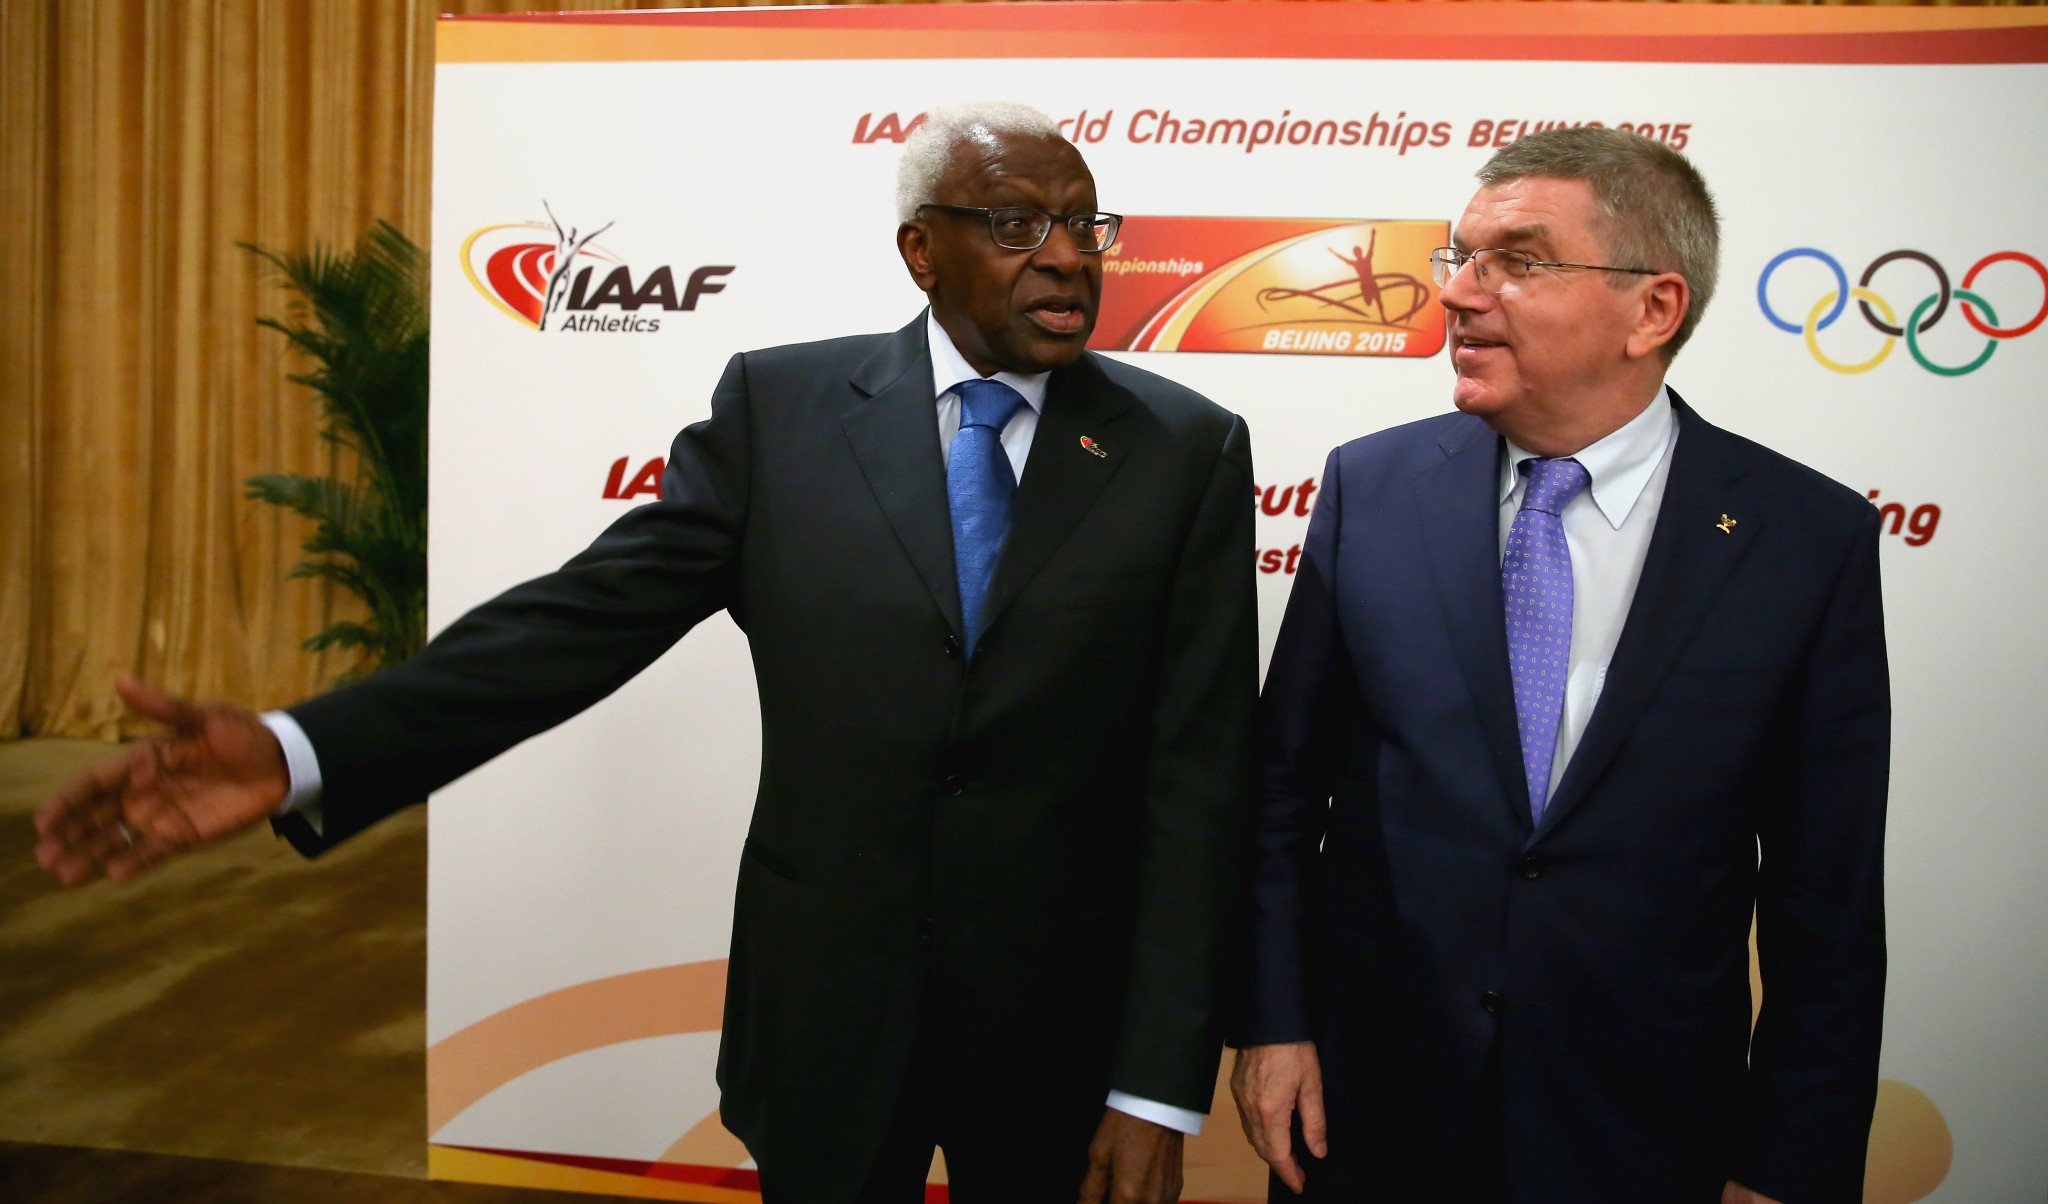 IOC President Bach to visit Los Angeles on September 17 and 18